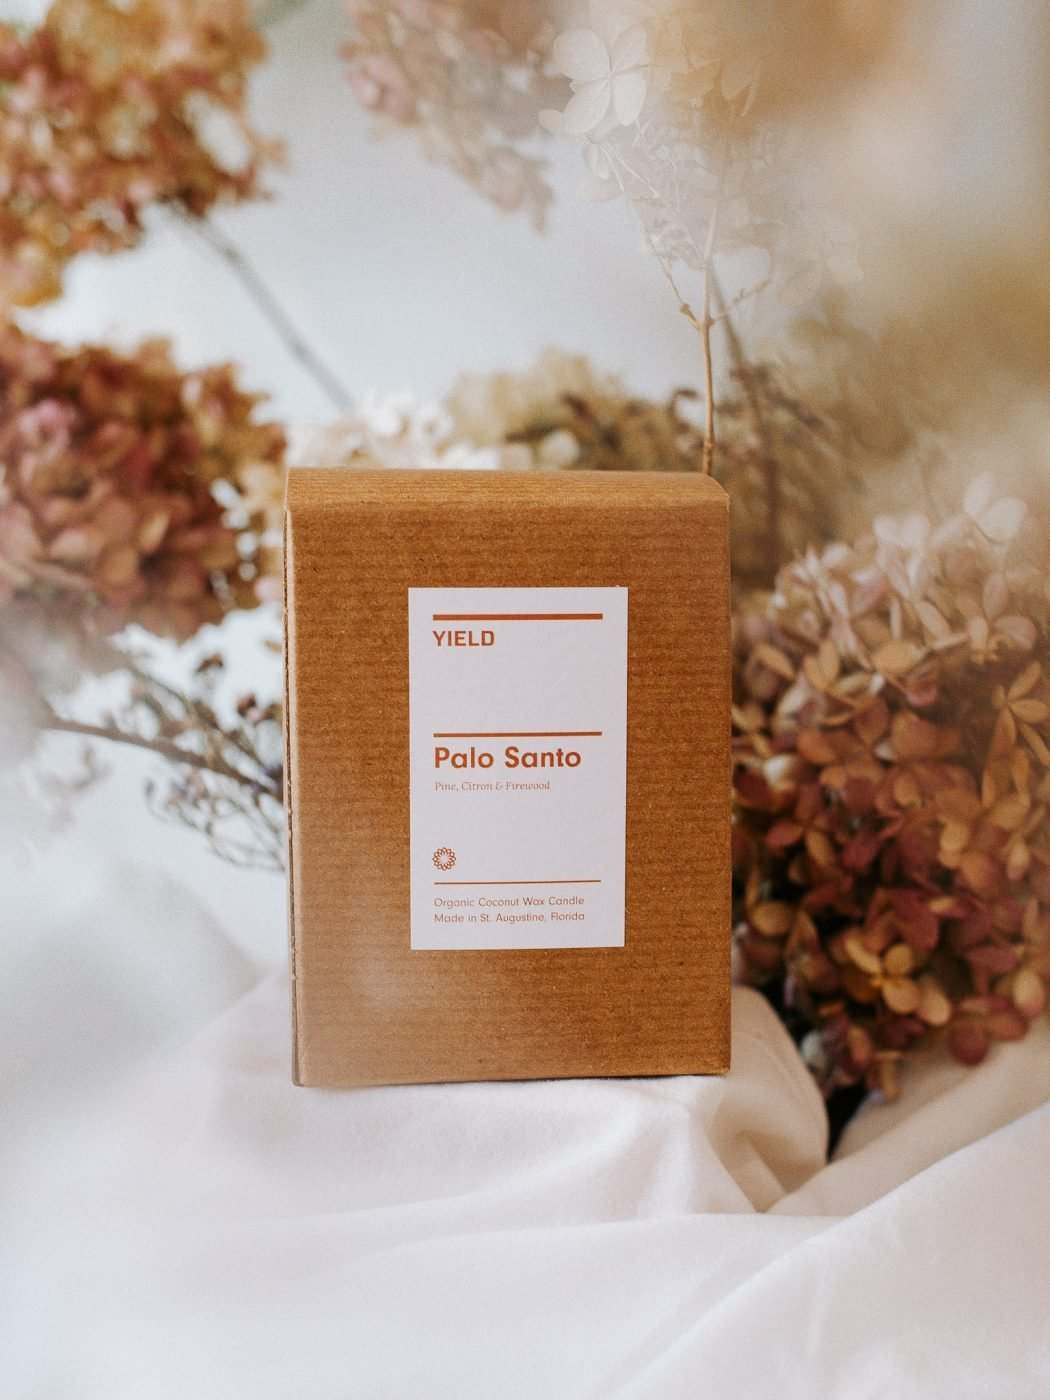 palo santo candle in a box by YIELD